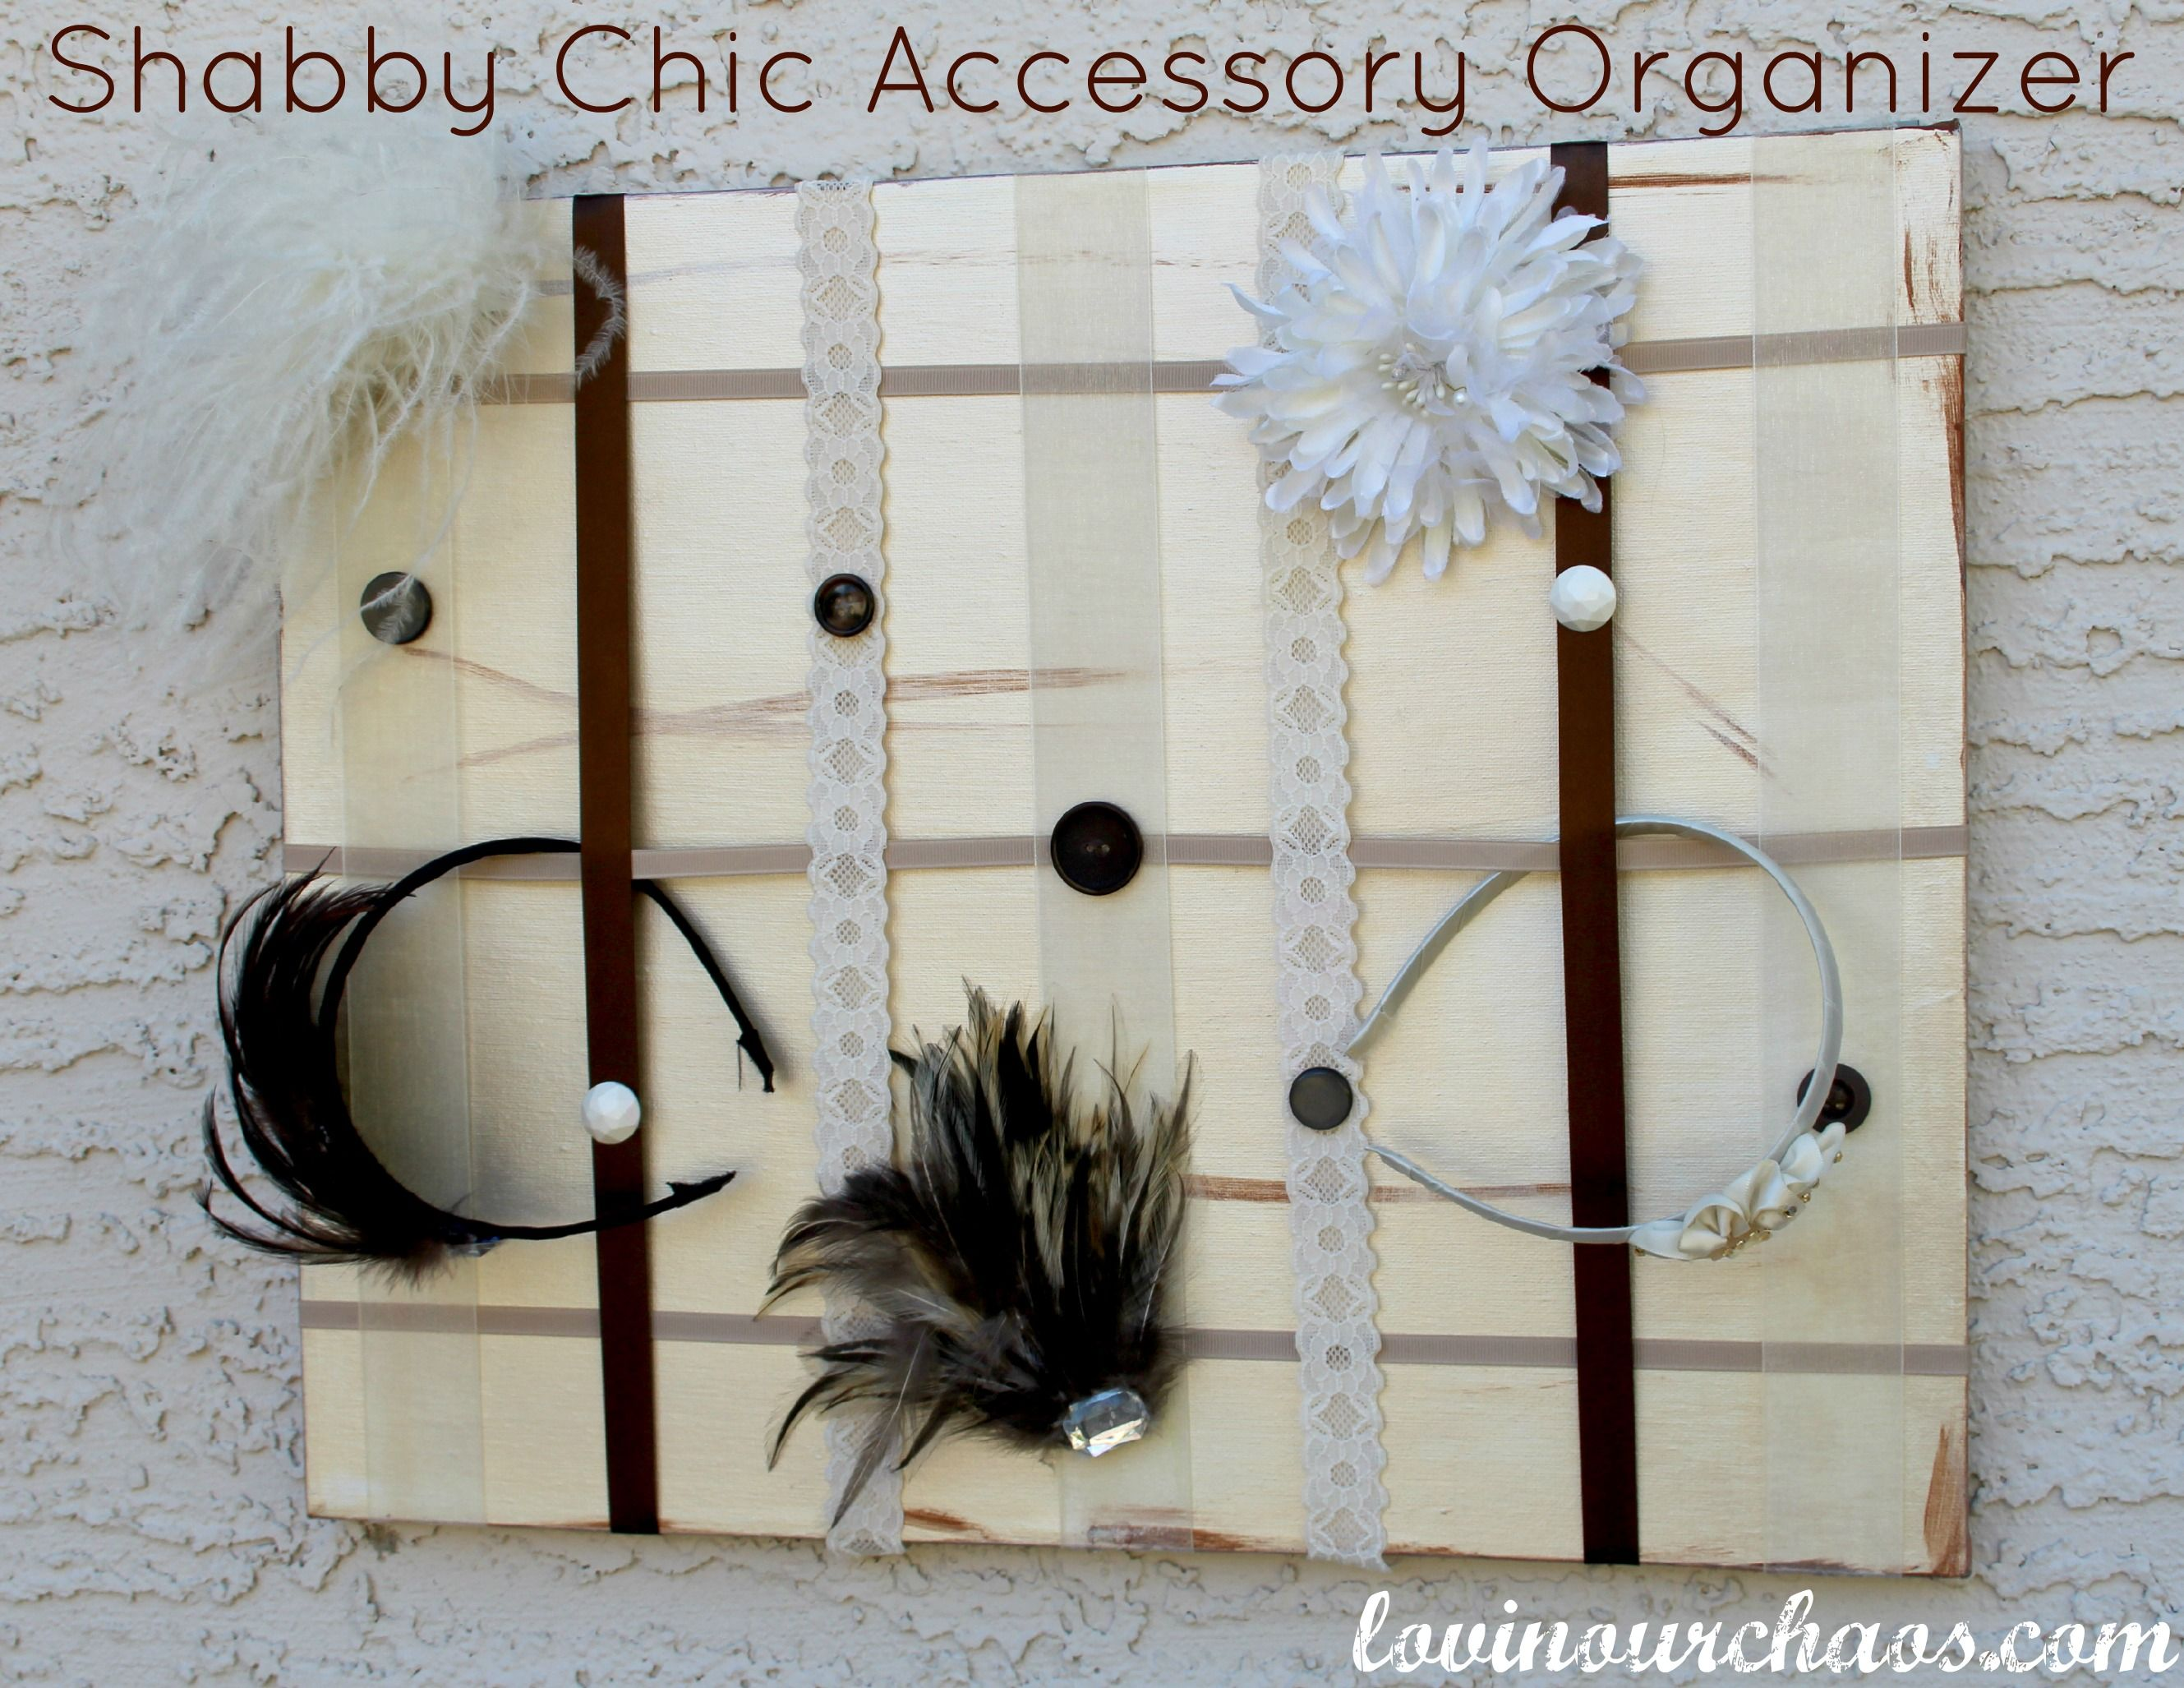 Shabby Chic Accessory Organizer from Lovin Our Chaos Roll top